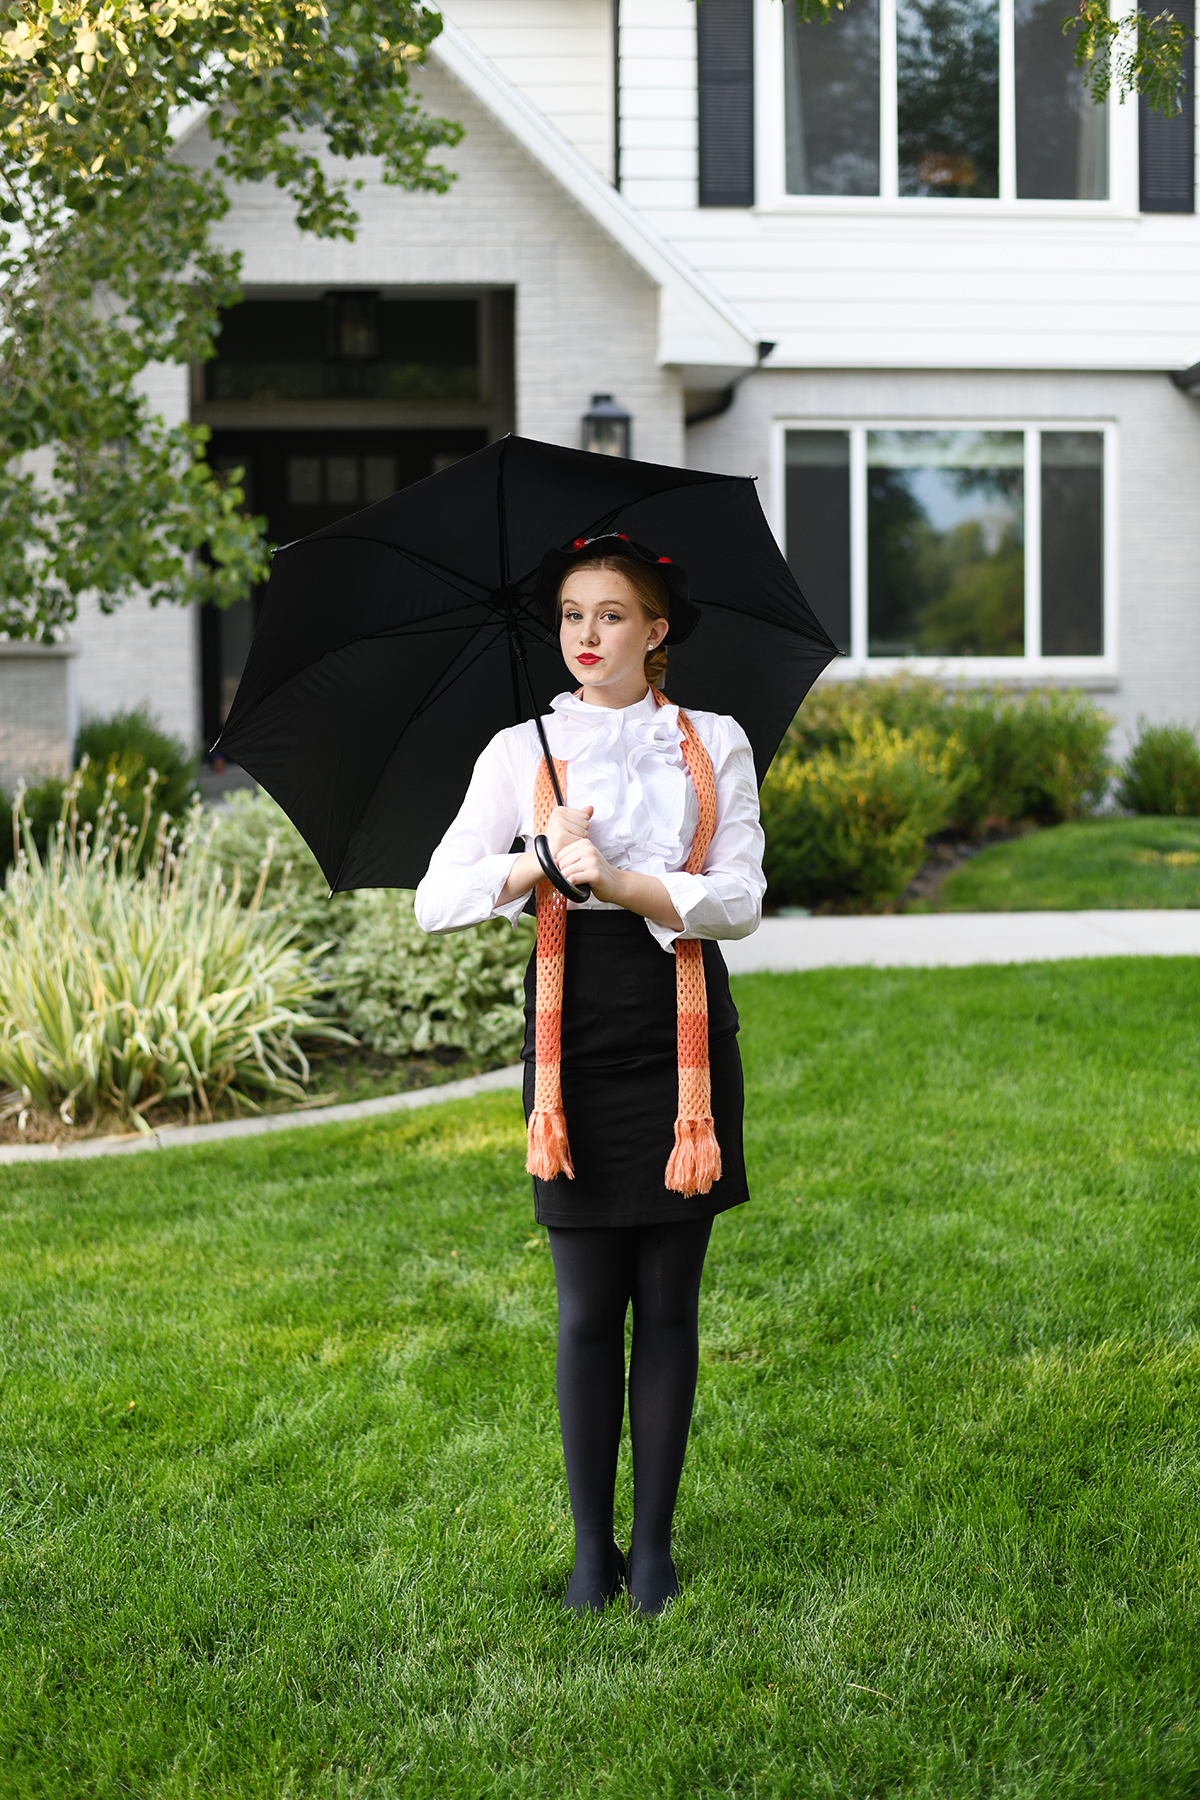 Diy mary poppins costume ideas